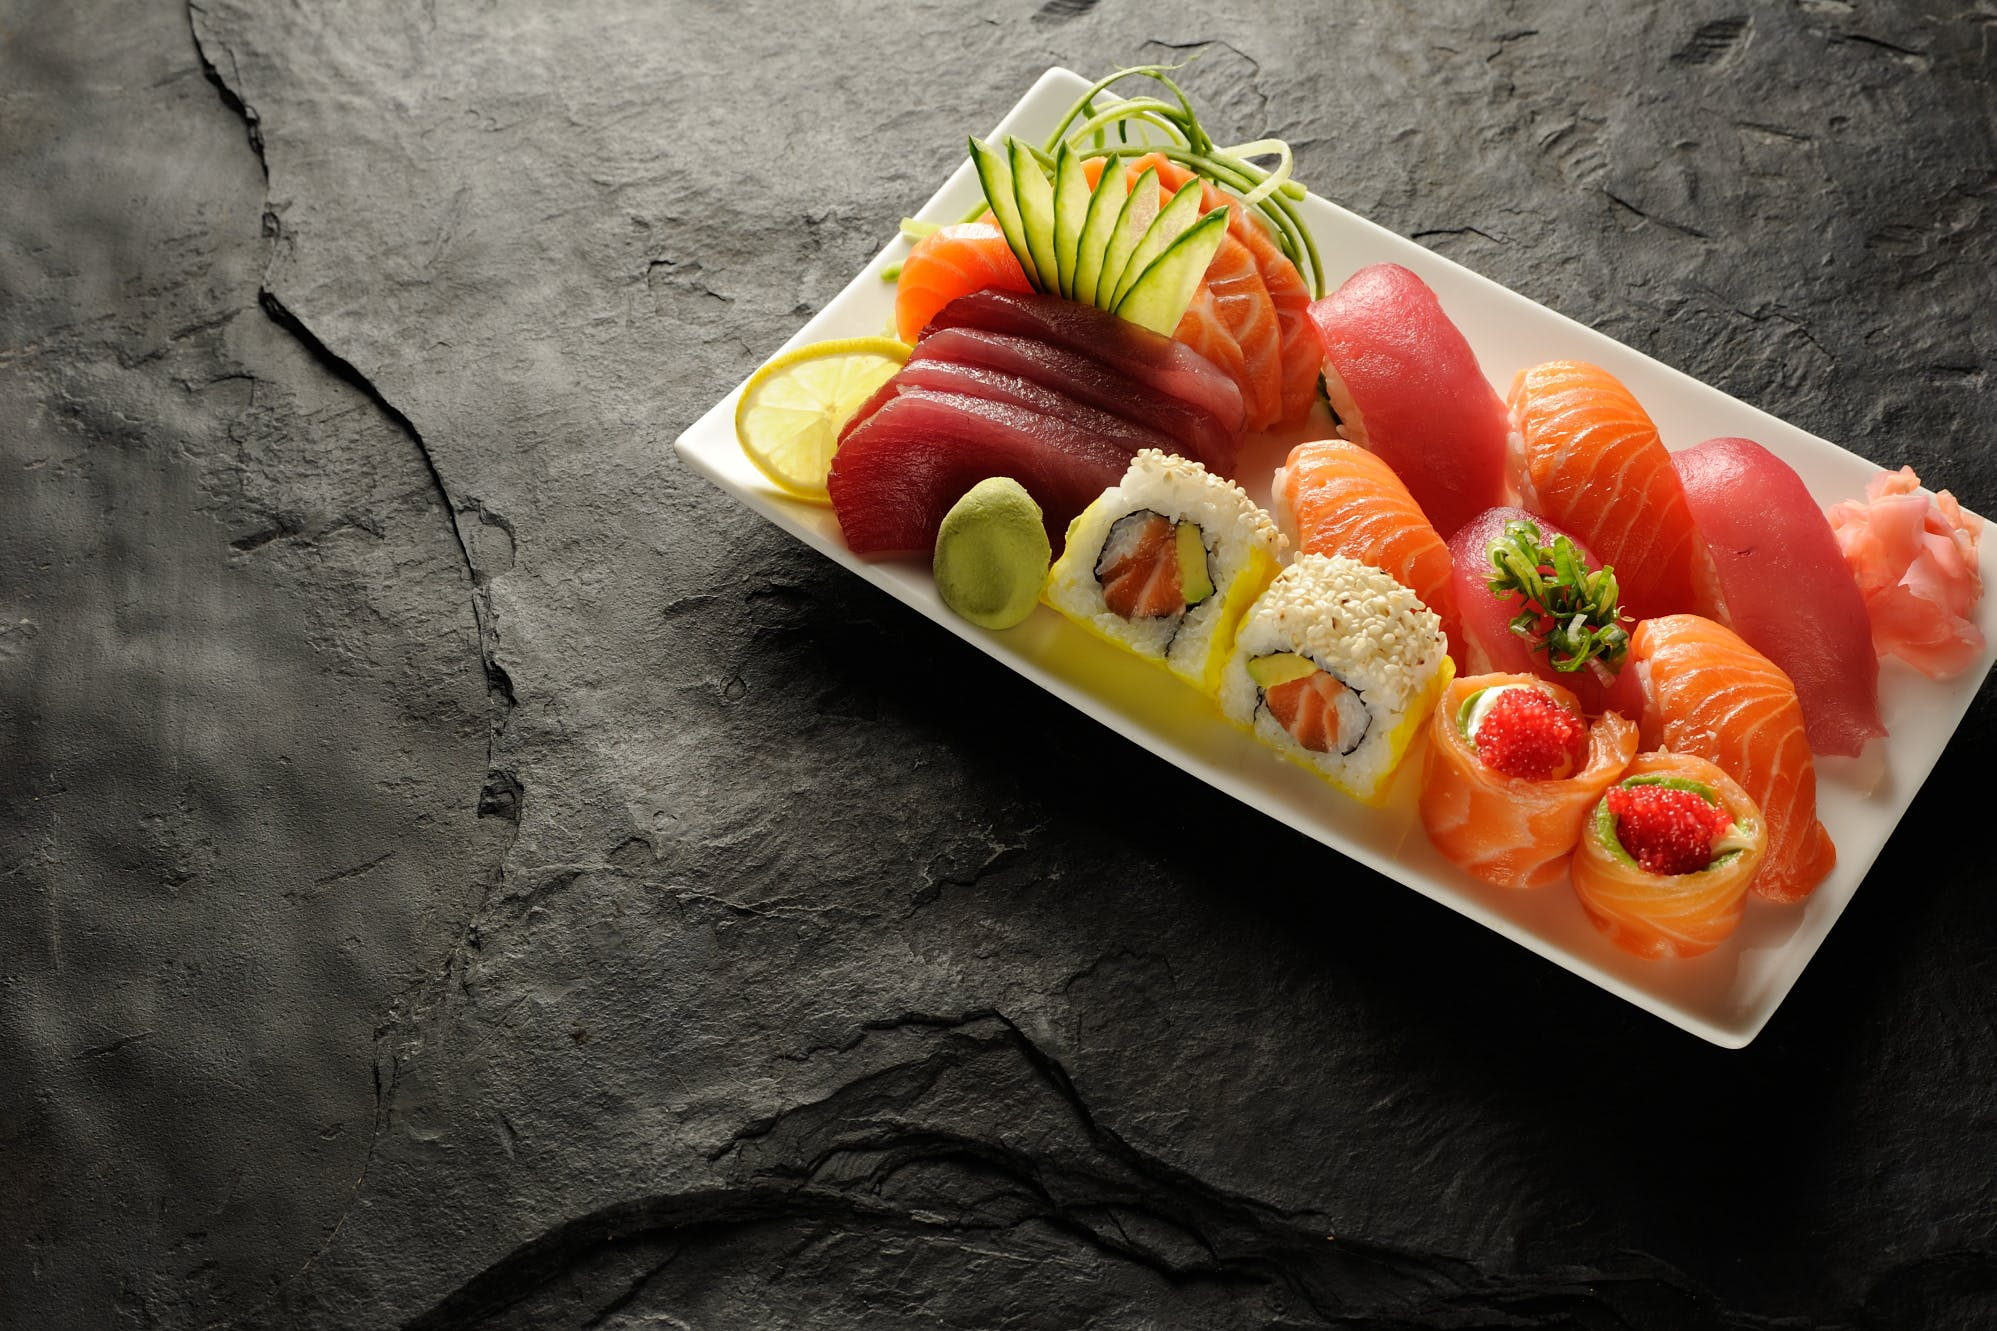 willoughby & co sushi best restaurants in cape town